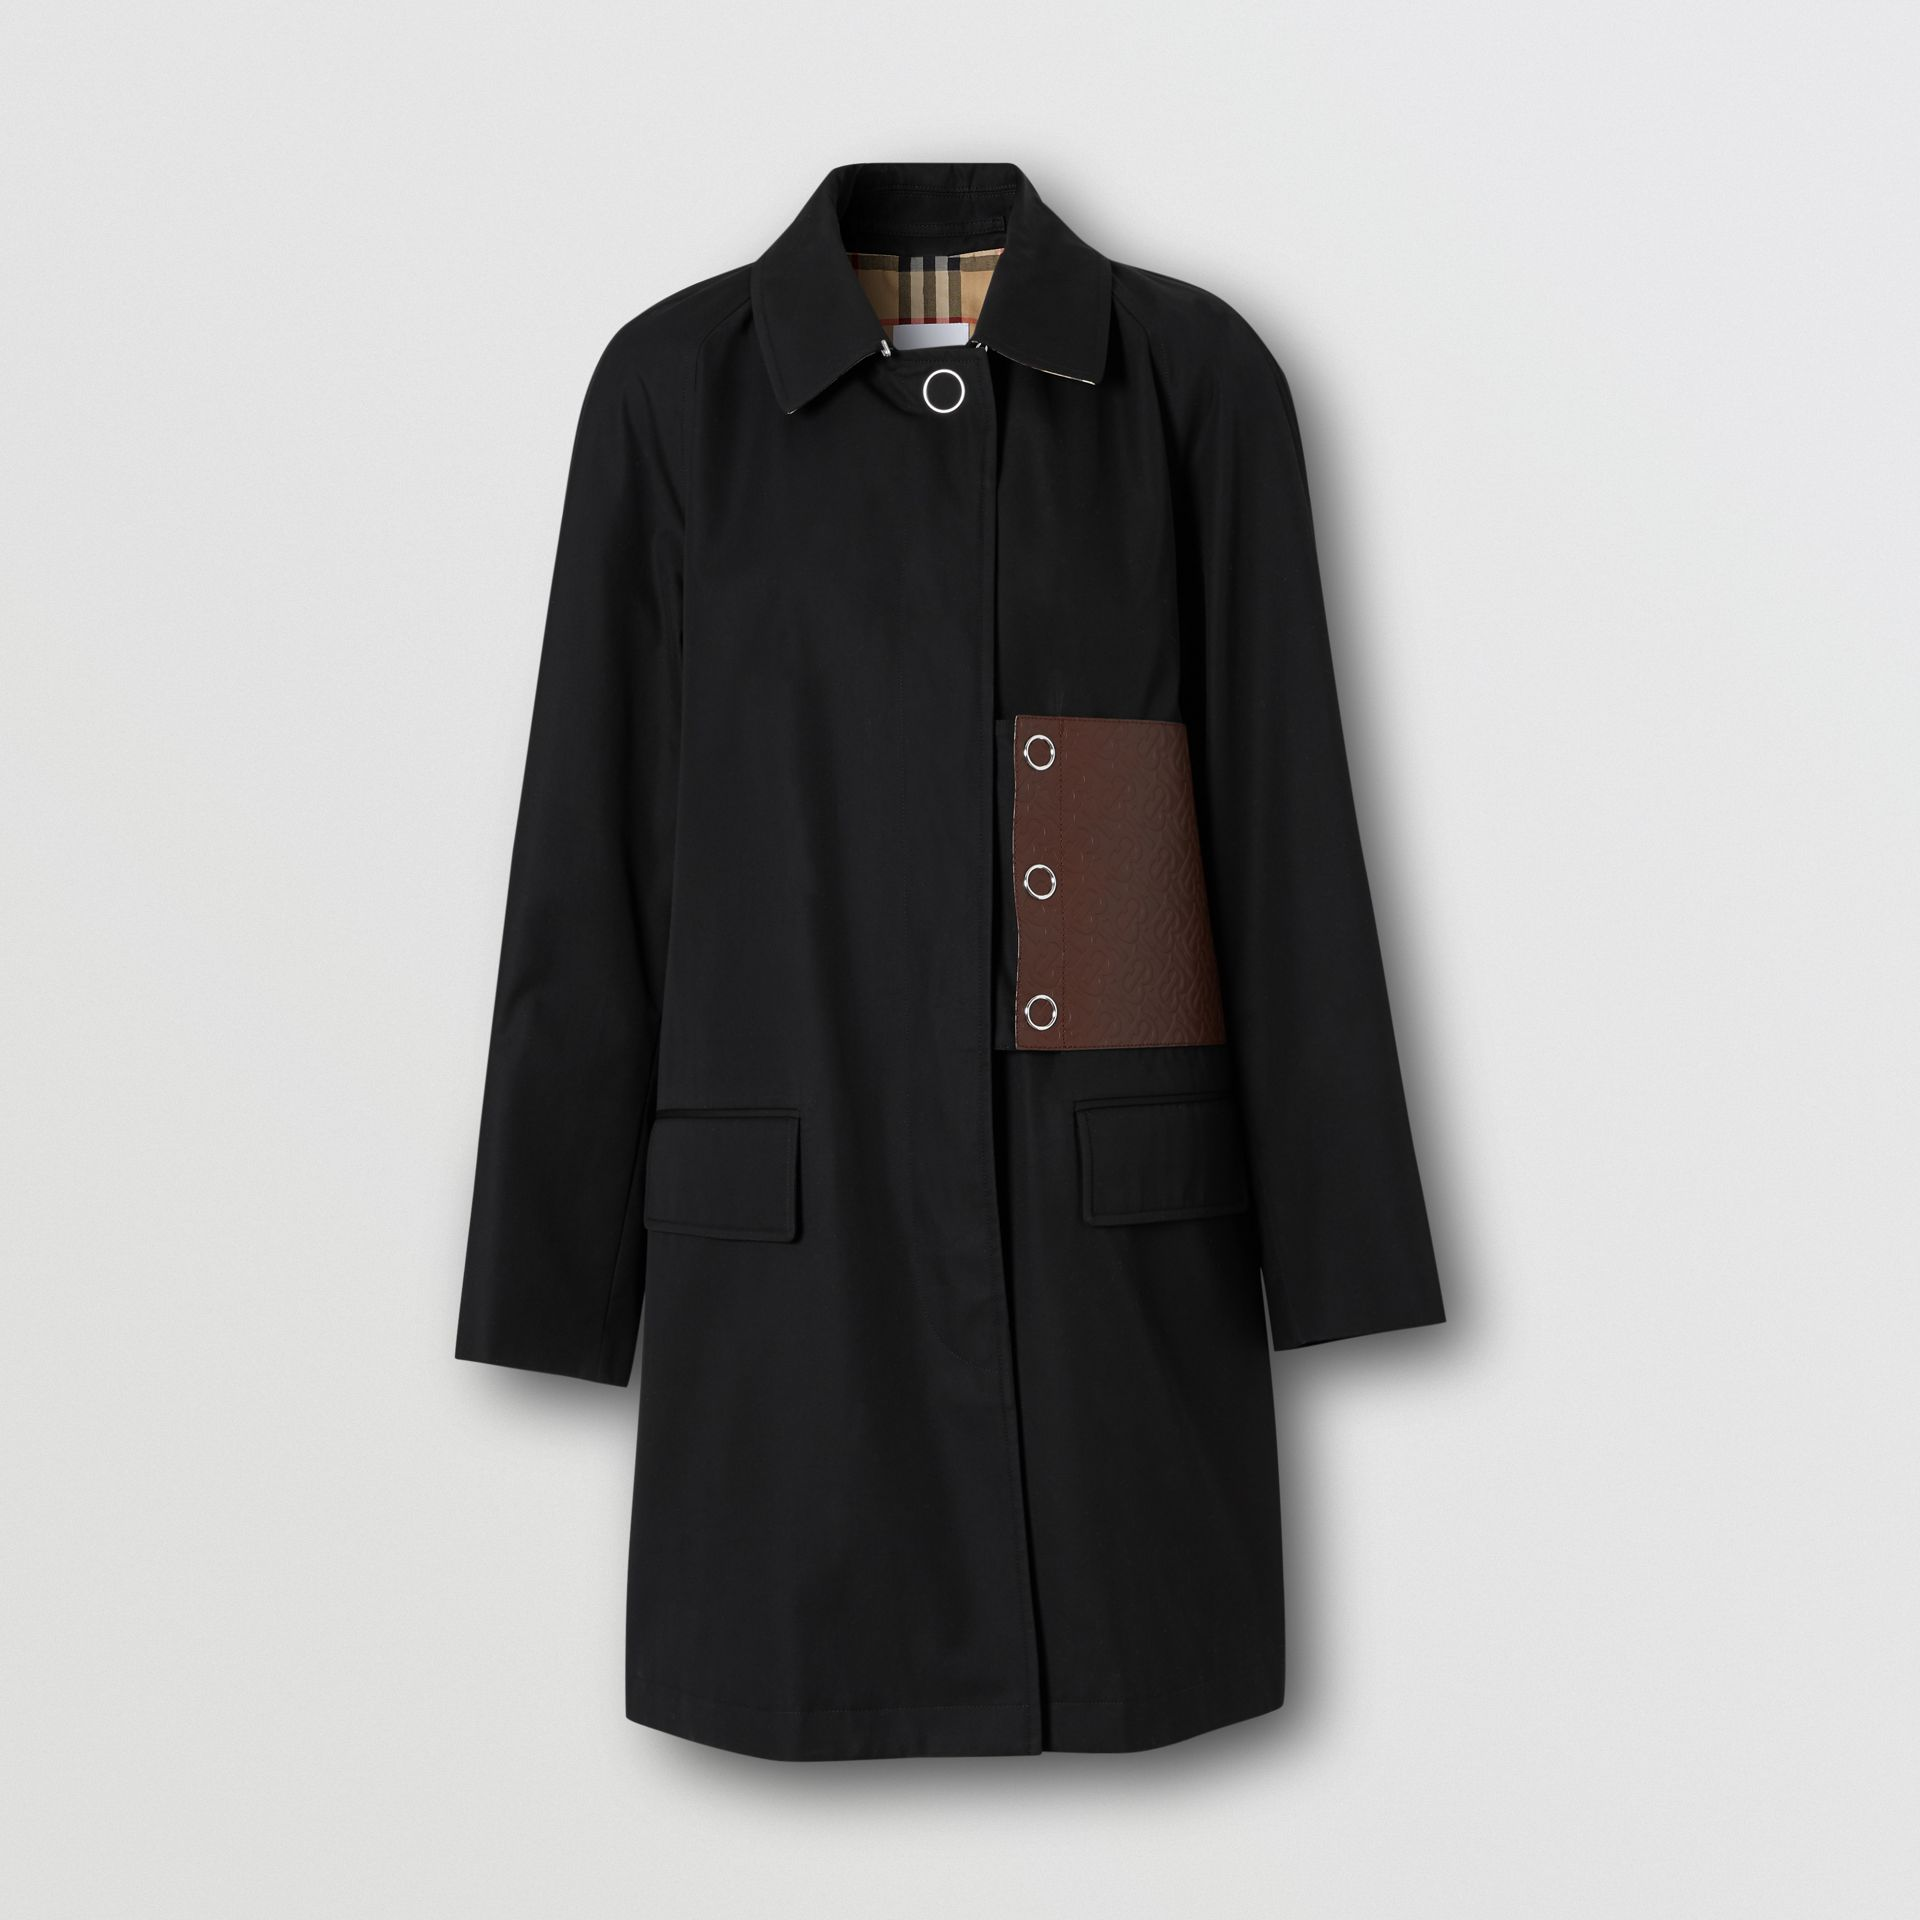 Monogram Leather Detail Cotton Gabardine Car Coat in Black - Women | Burberry United Kingdom - gallery image 3